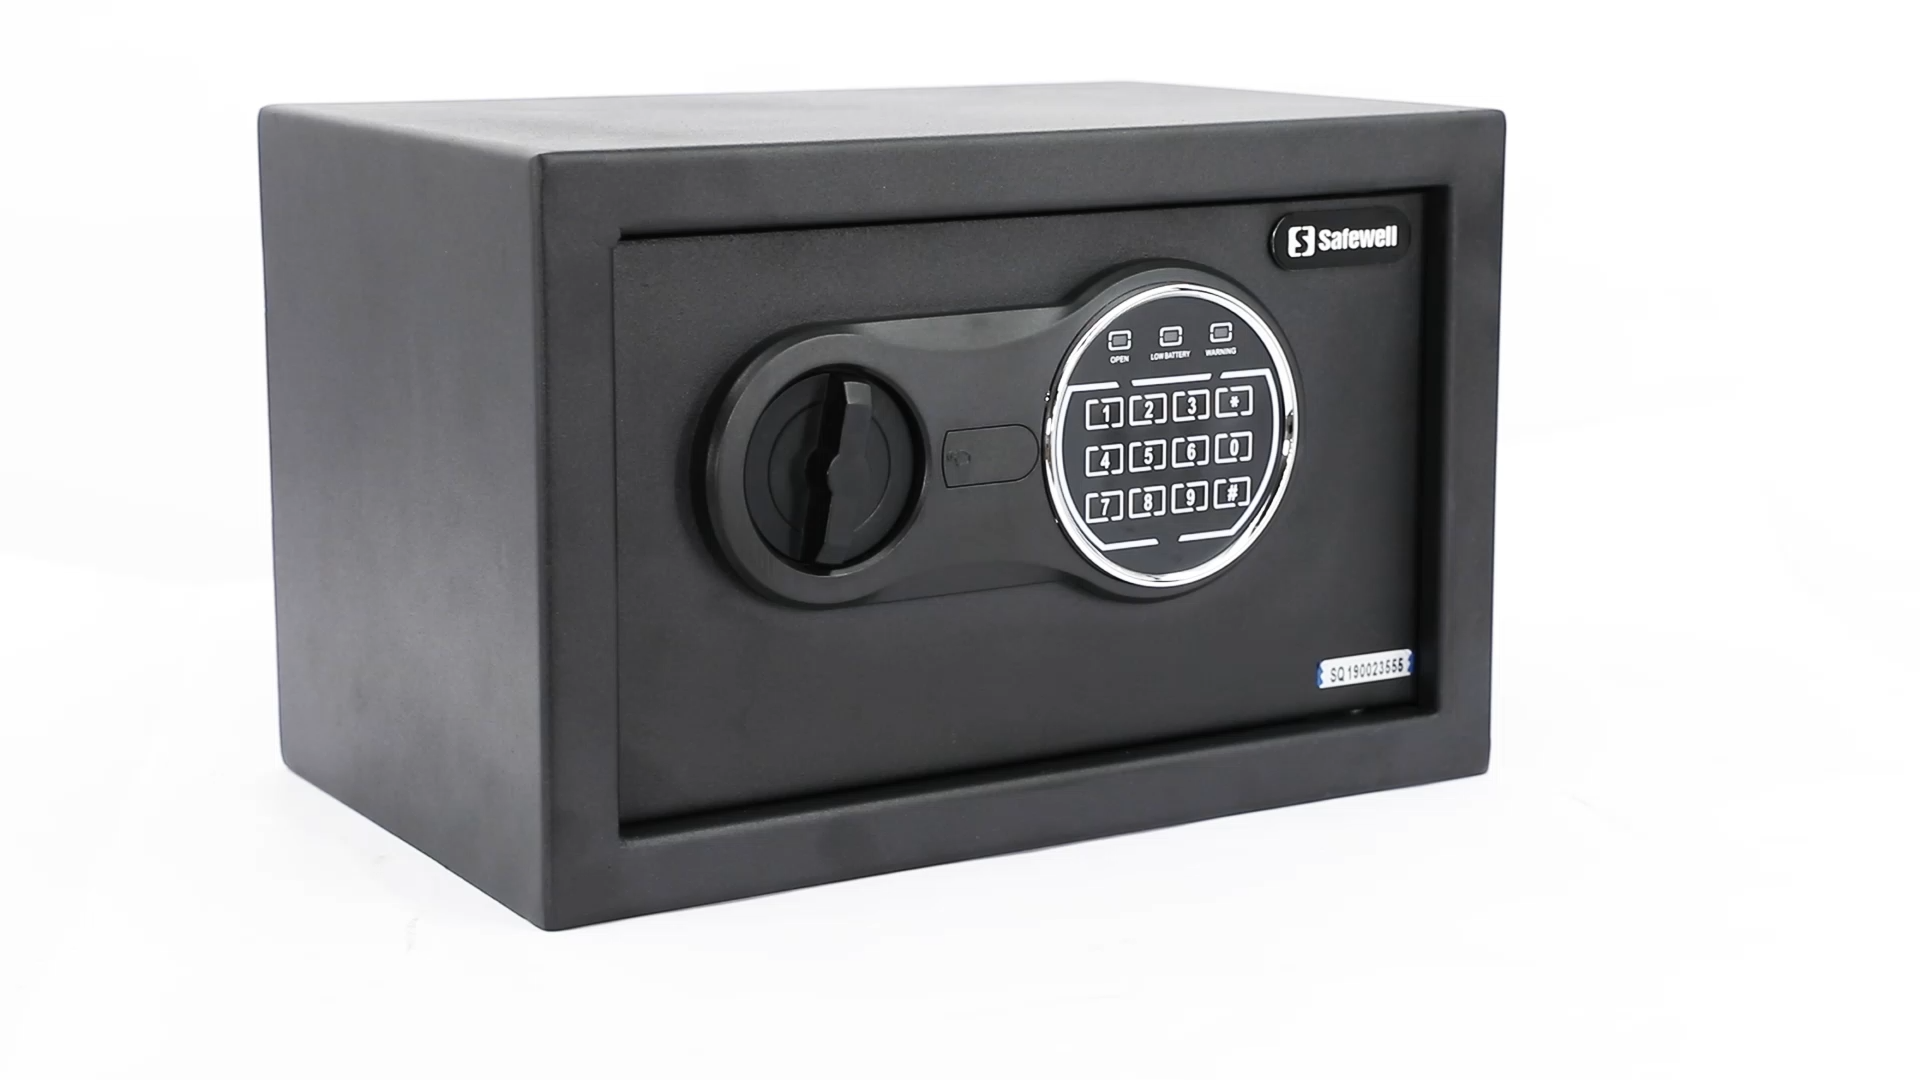 Safewell 20SCE electronic security safe box digital lock safe for home and office use safe box